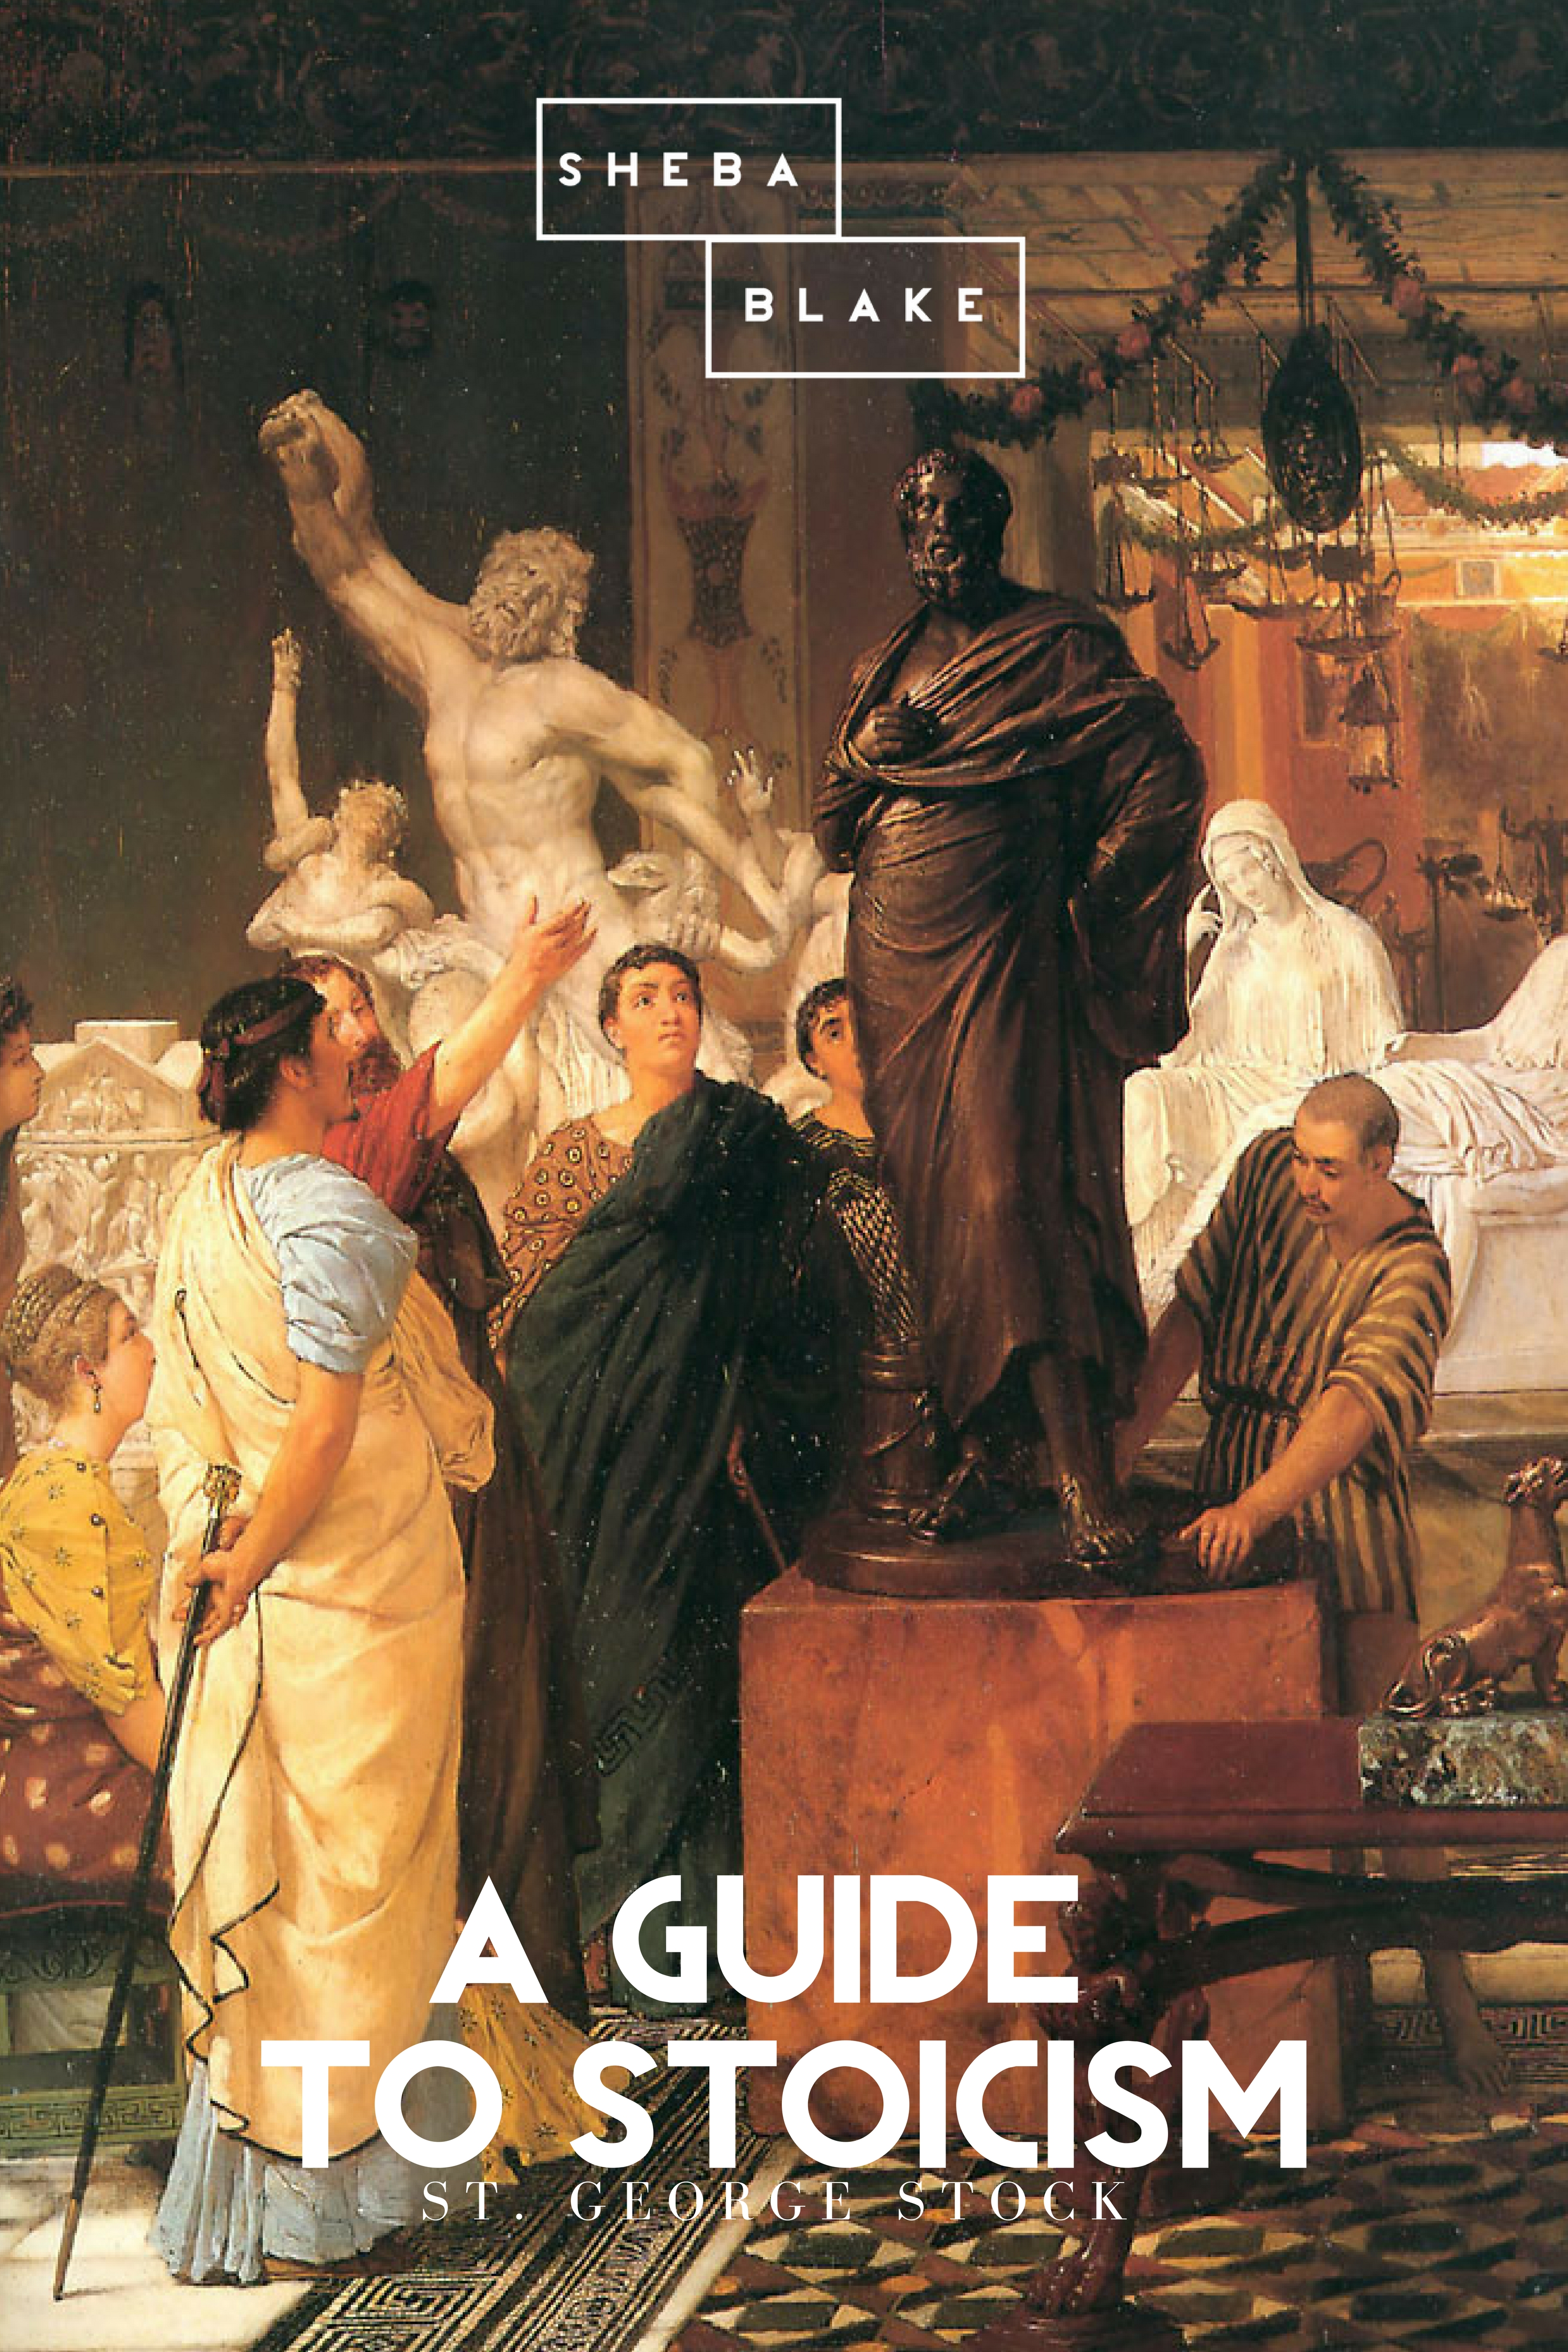 St. George Stock A Guide to Stoicism st george william joseph stock stoicism